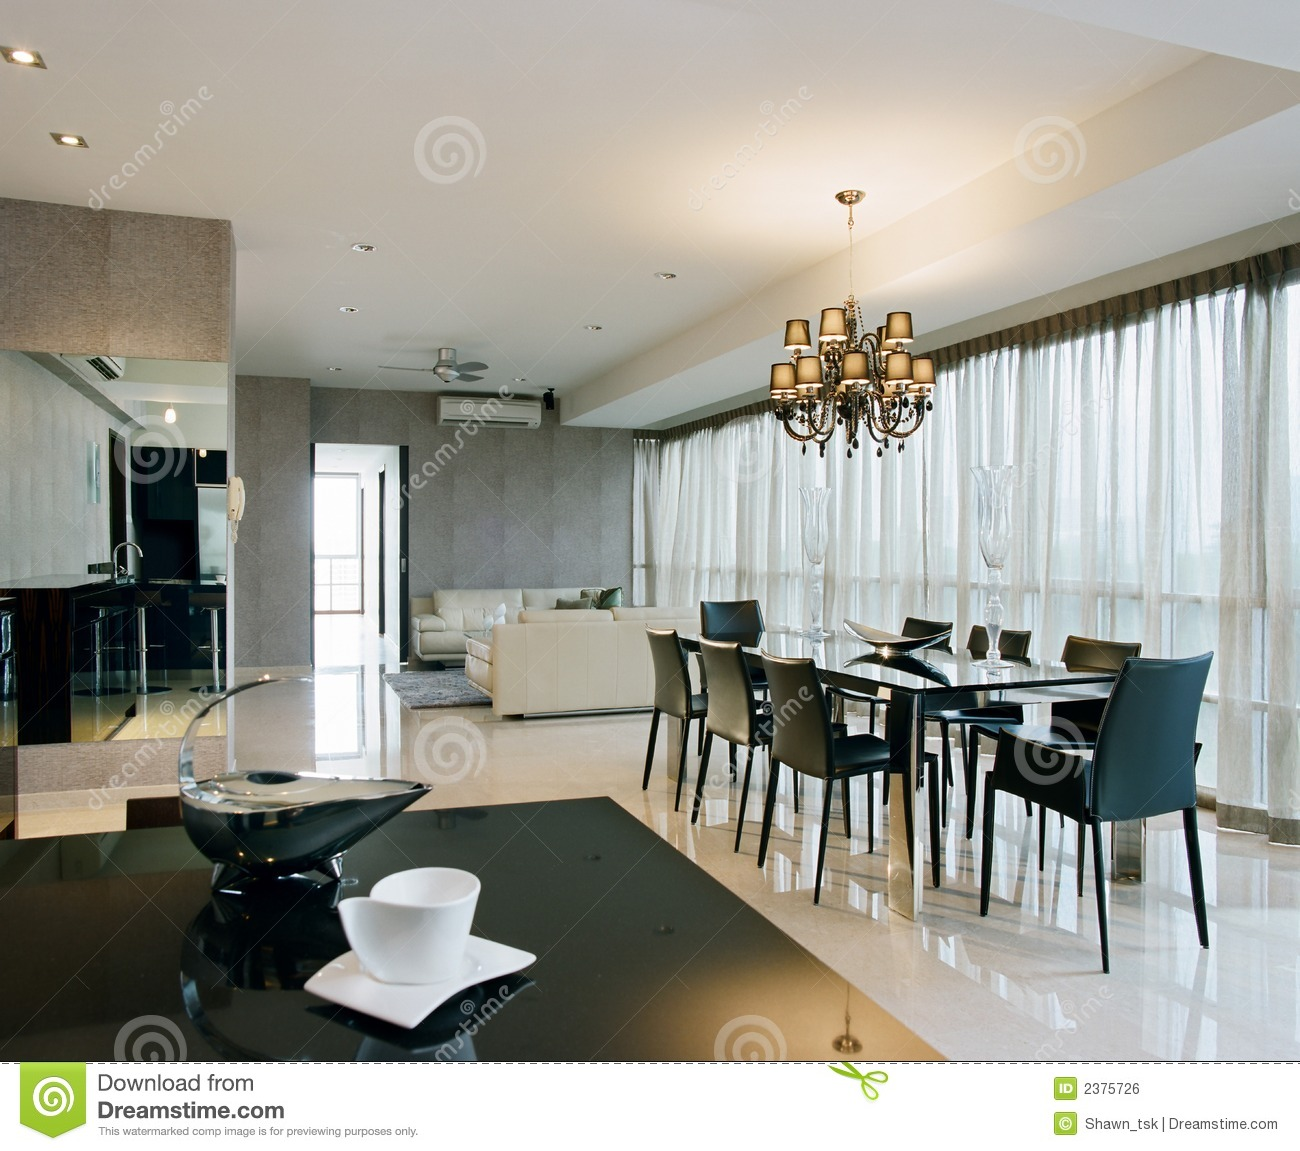 Interior design dining area royalty free stock image - Dining interior design ...